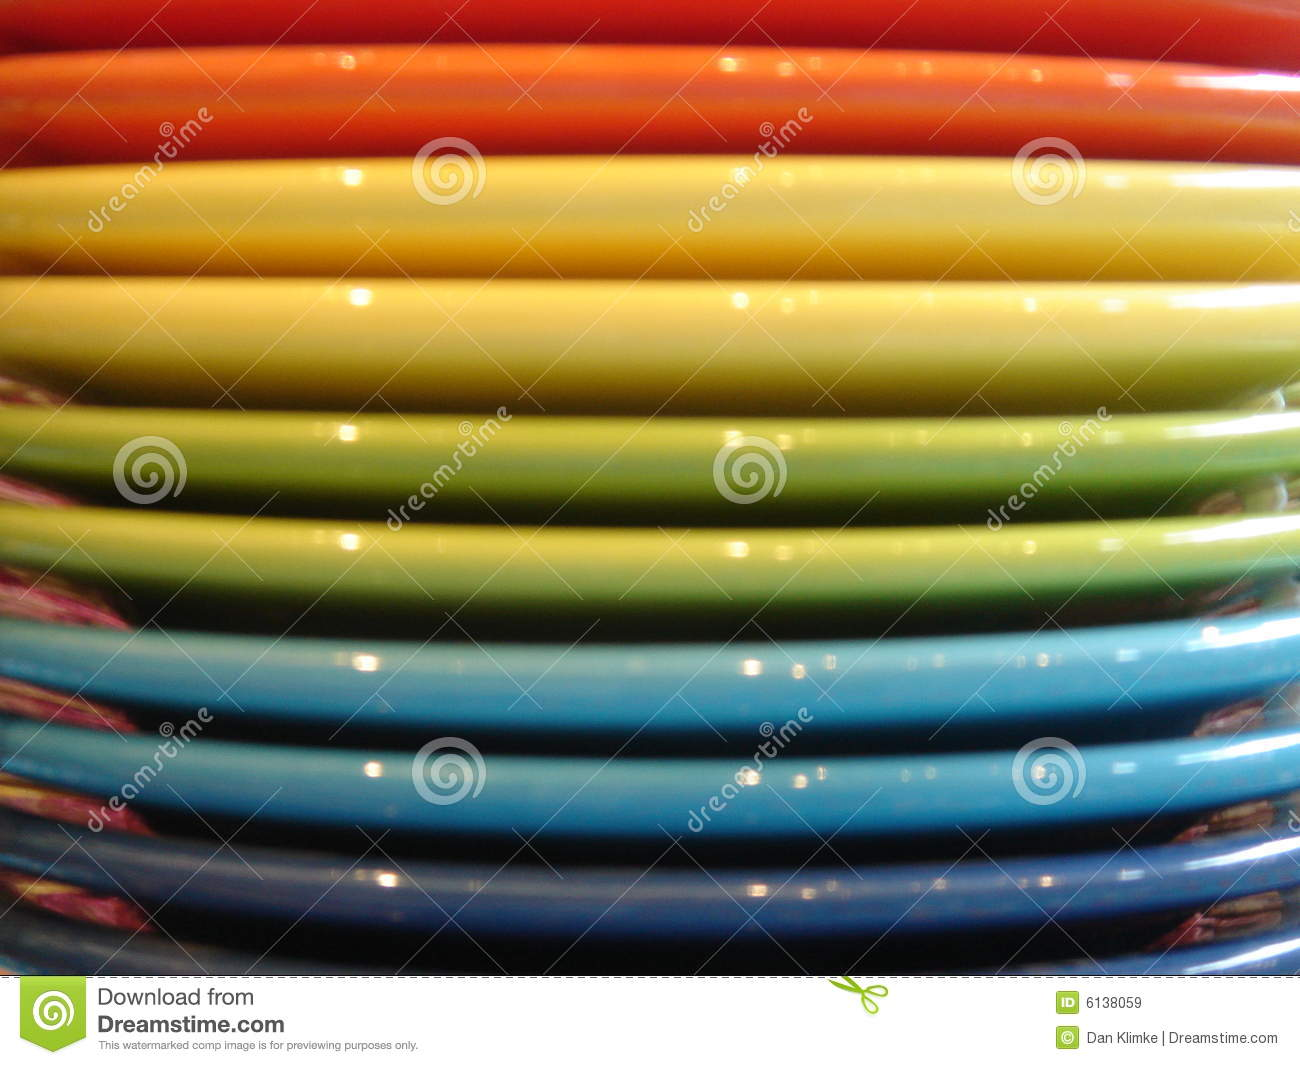 Multiple Colored Porcelain Plates  sc 1 st  Dreamstime.com & Multiple Colored Porcelain Plates Stock Image - Image of yellow ...